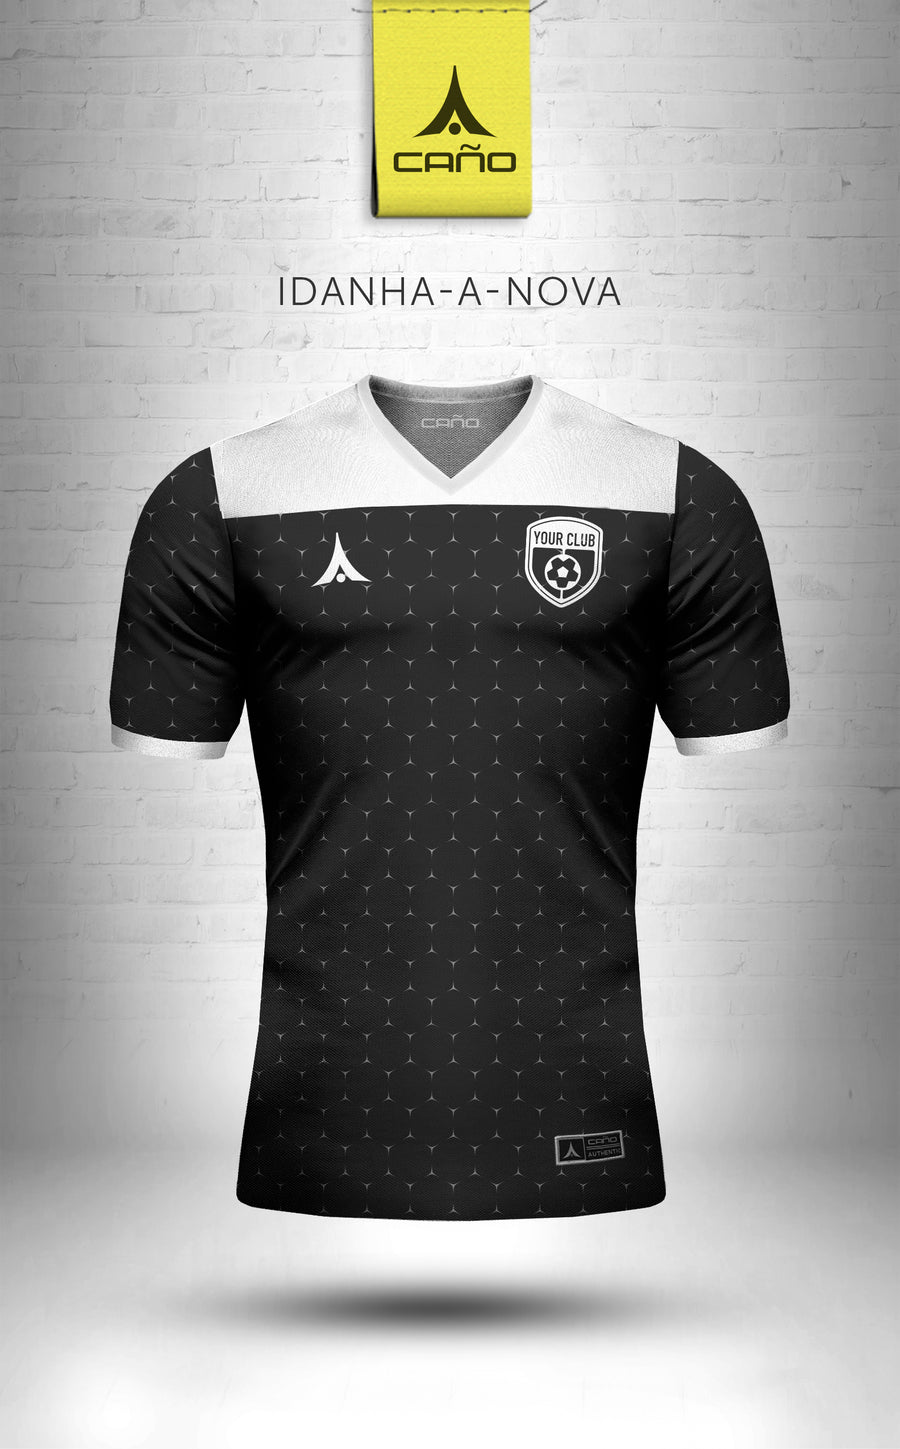 Idanha-a-Nova in black/white